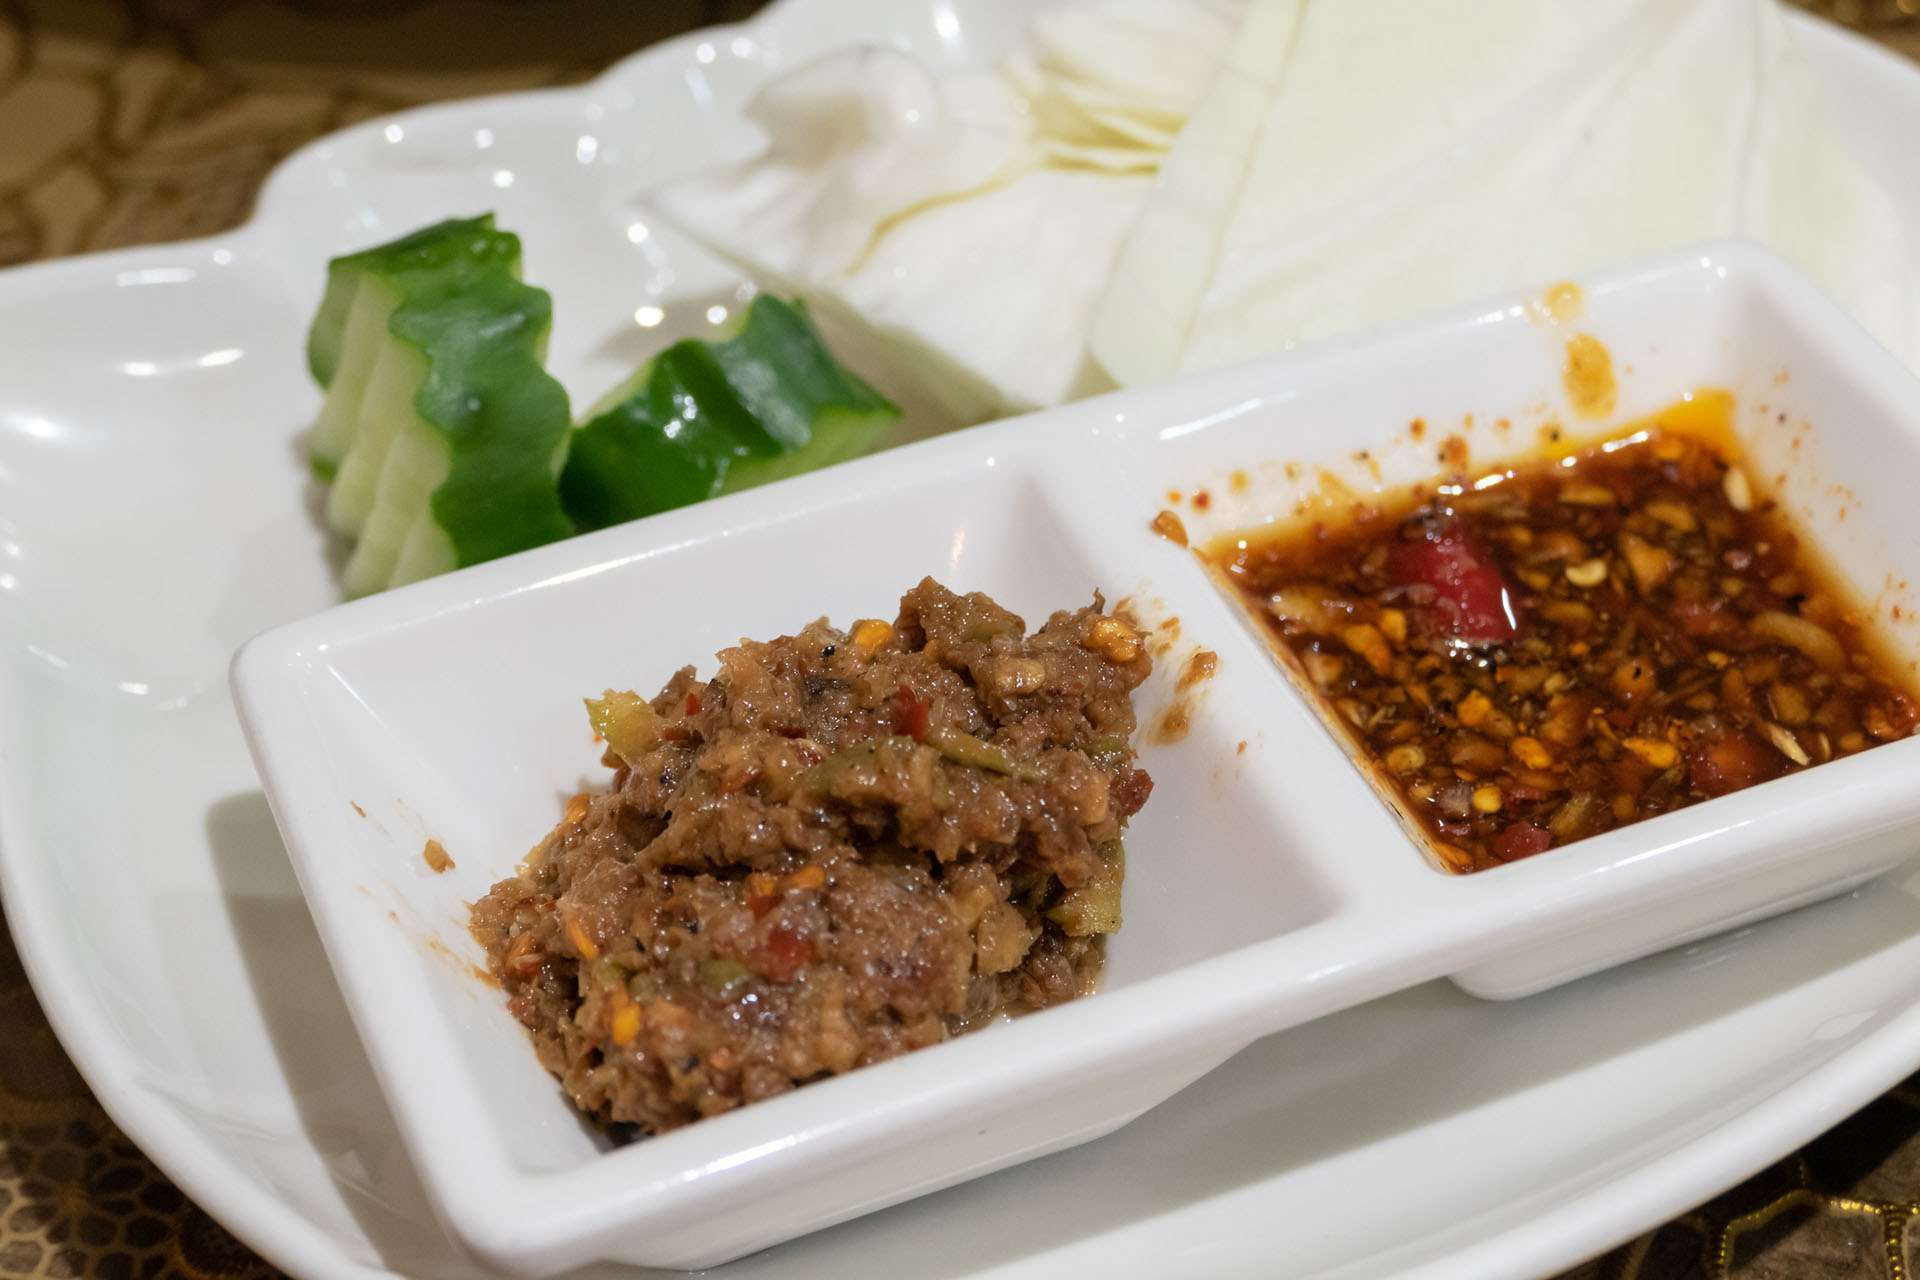 sauce dish with Ngapi on a plate with cucumber slices